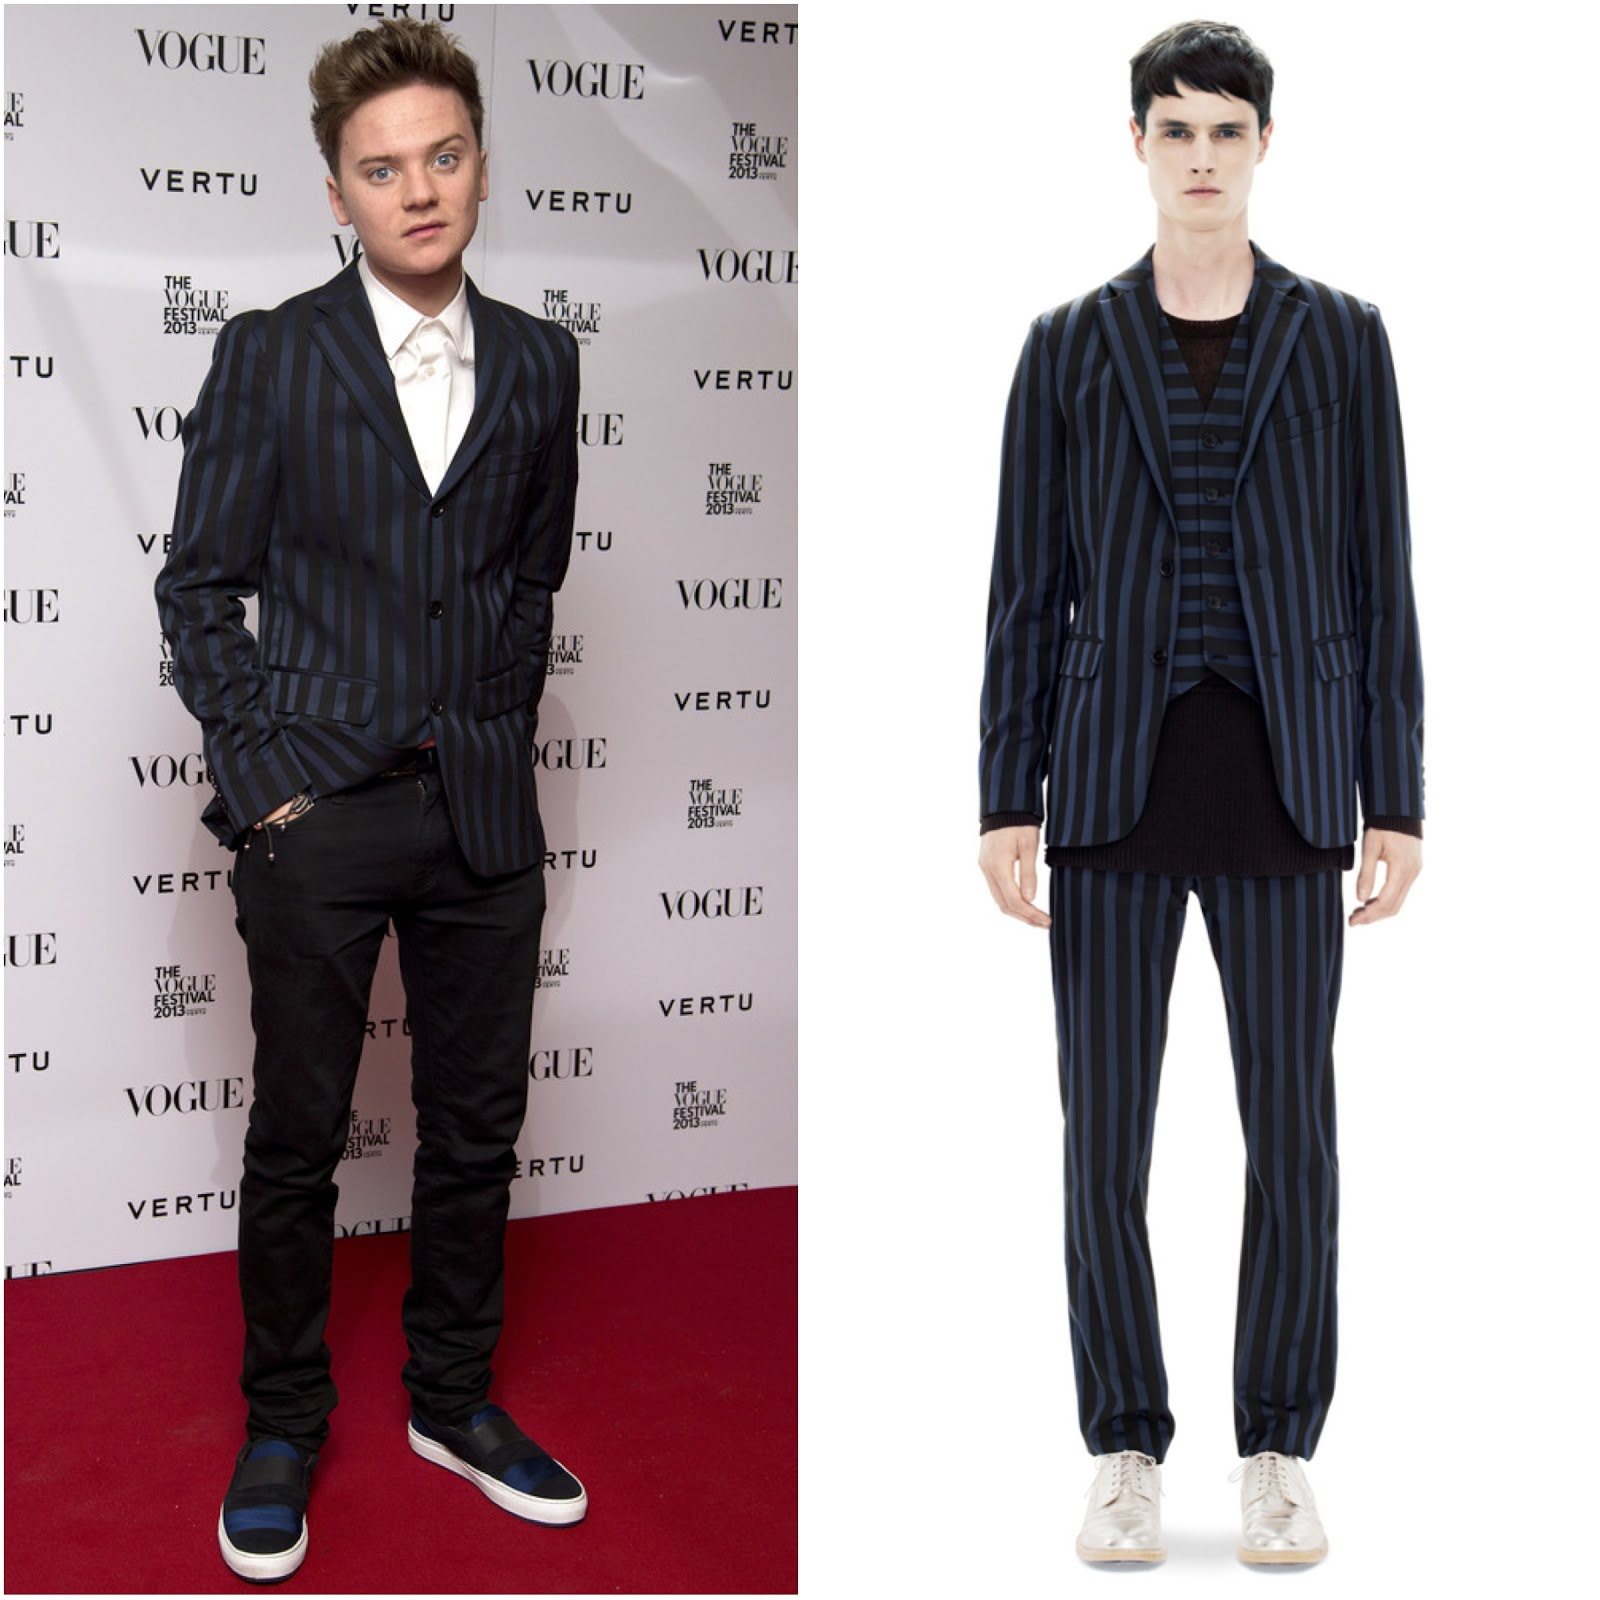 00O00 Menswear Blog: Conor Maynard in Acne Studios Drifter J Rand suit jacket and HANS STRIPED SLIP-ON SHOES - The Vogue Festival 2013, London